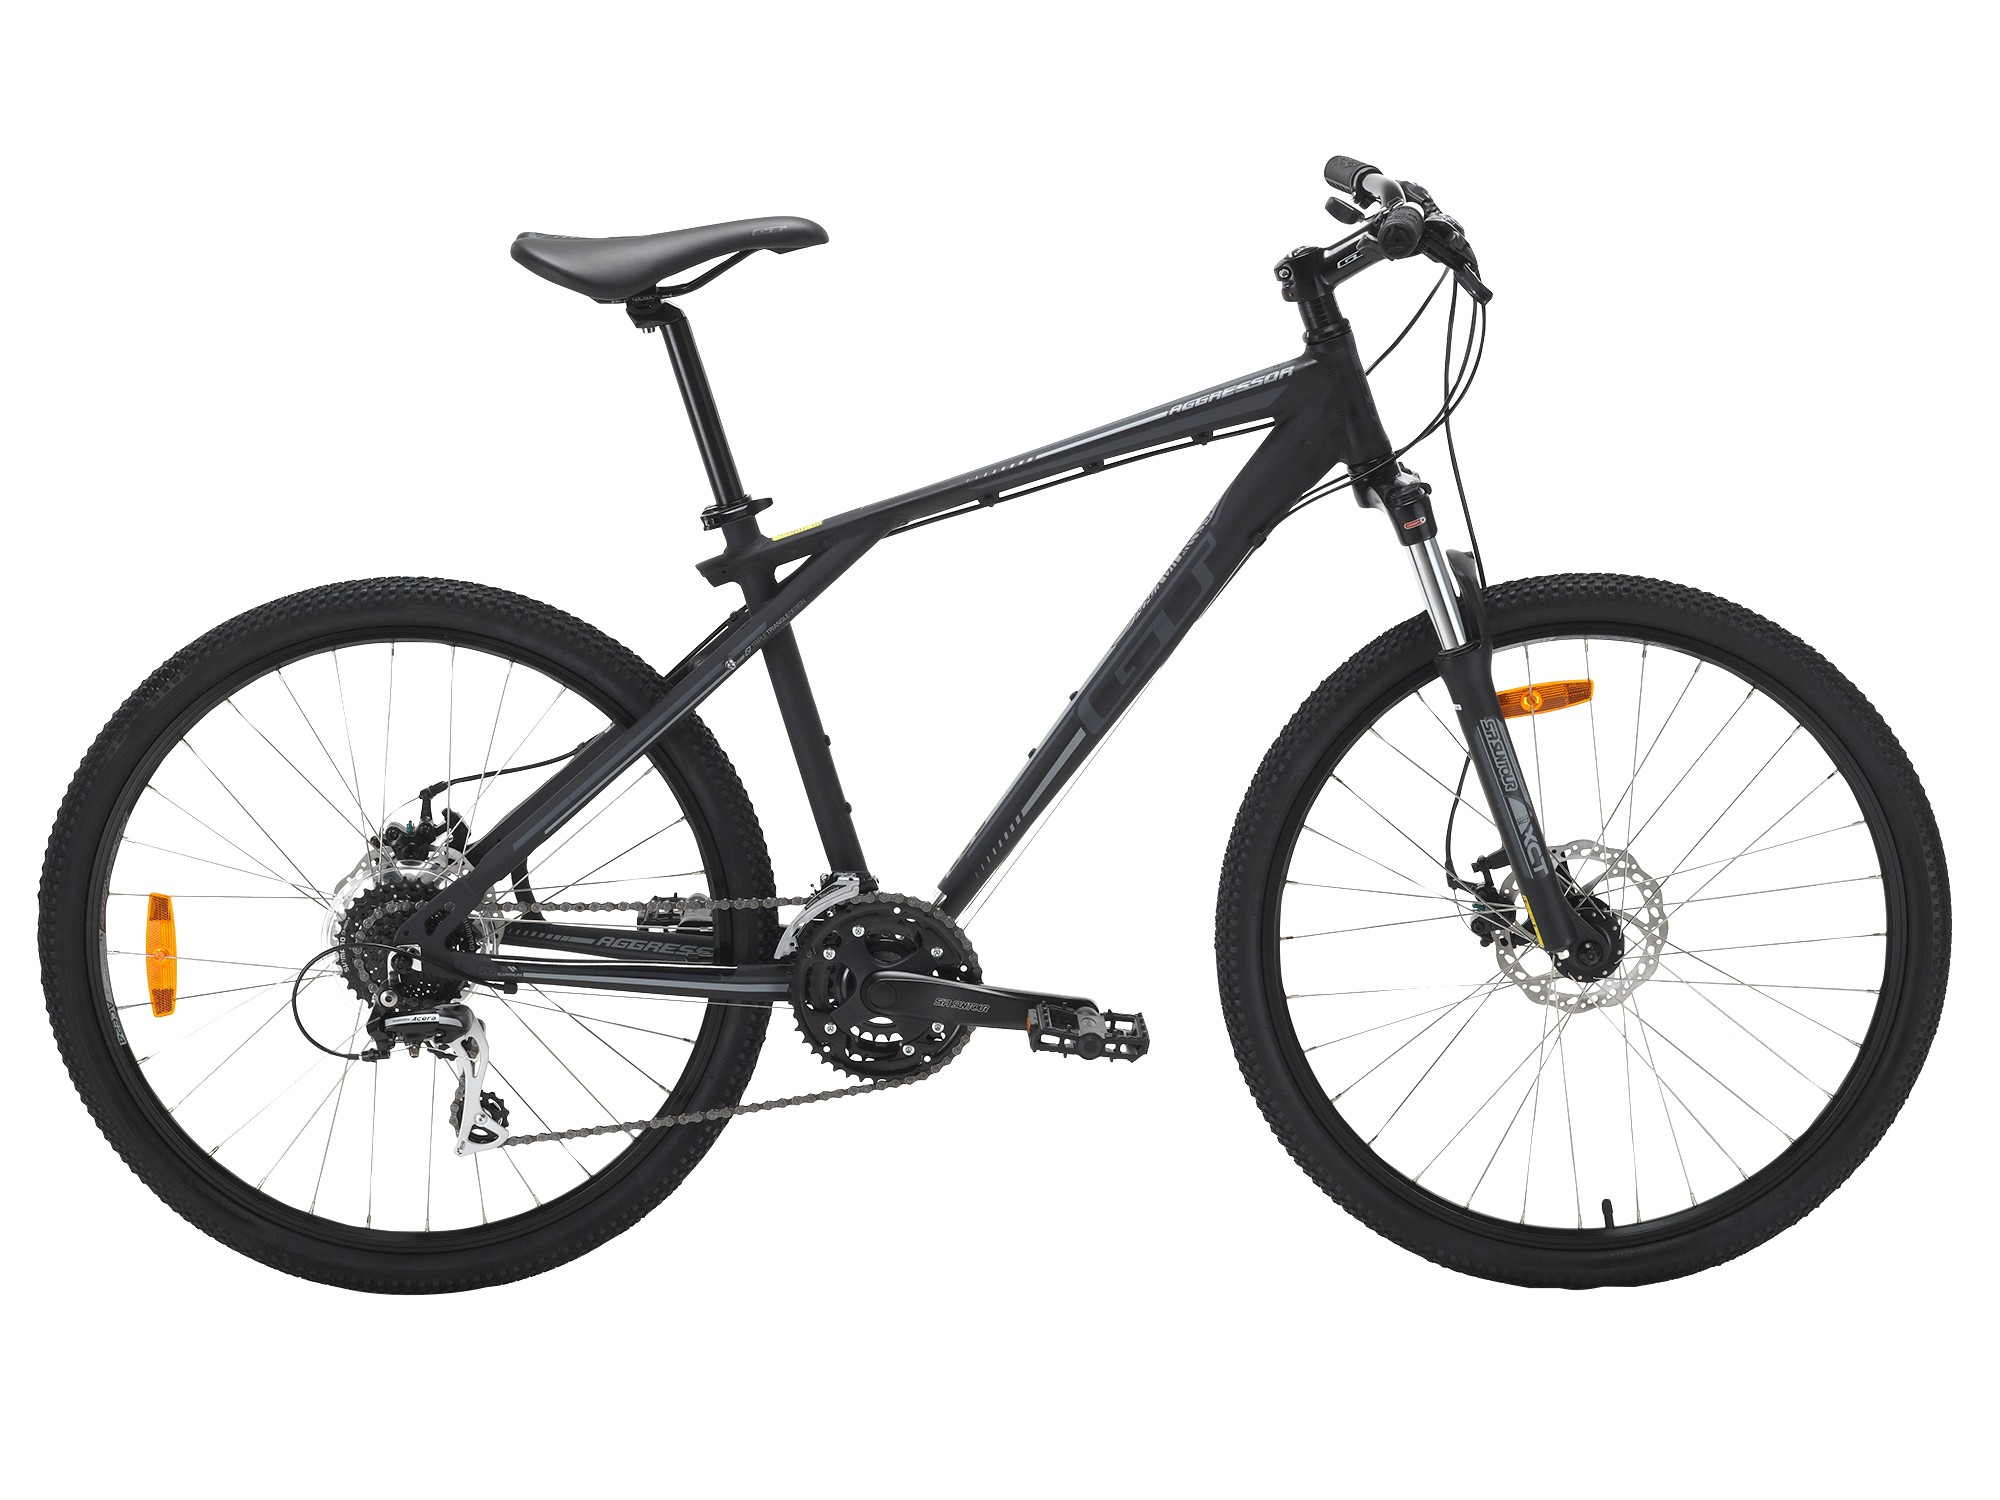 Bicicletas forum sporting bet - 707010